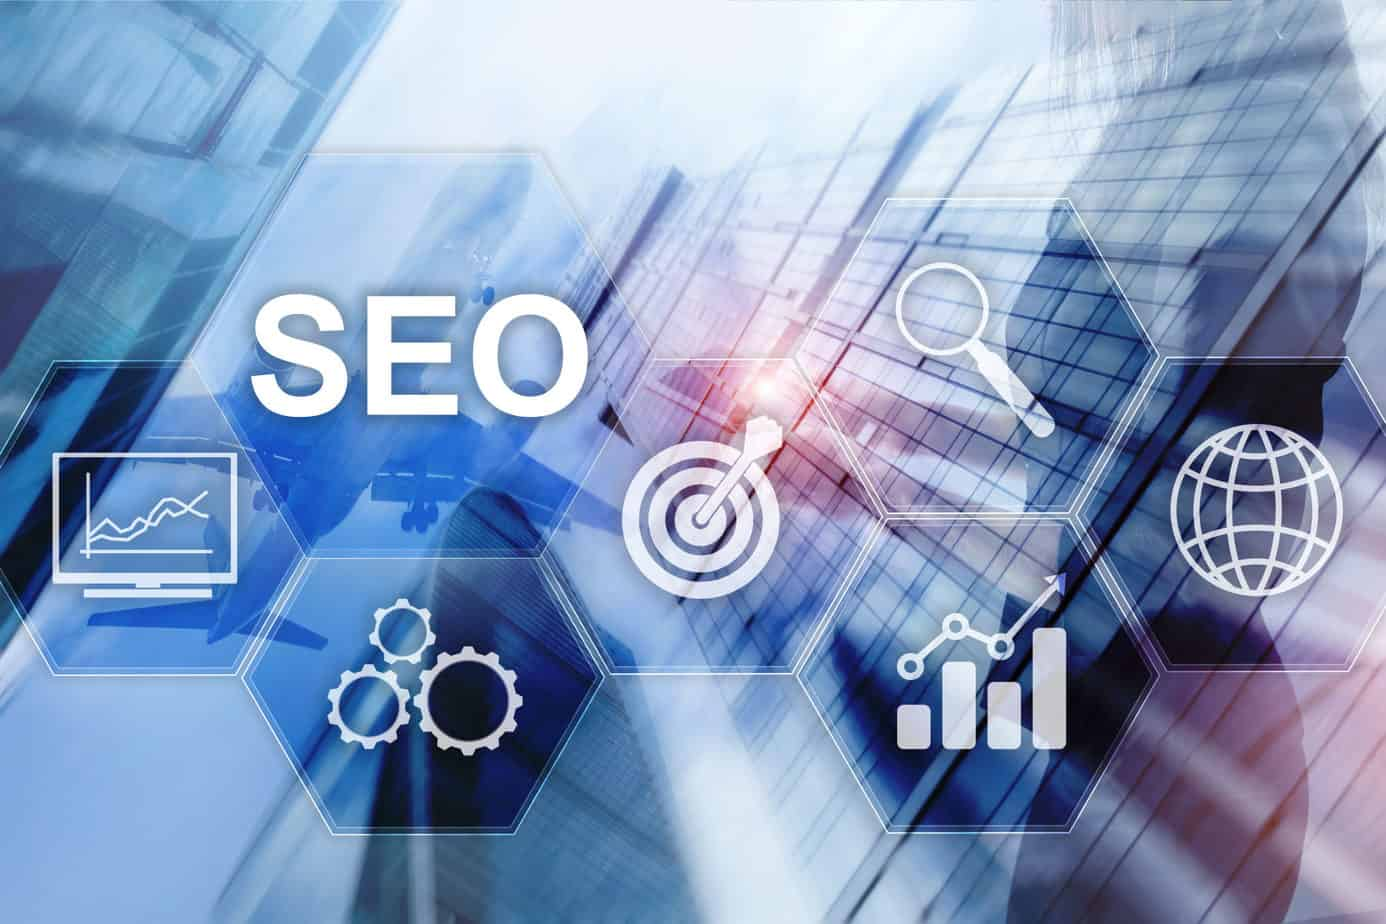 SEO - Search engine optimization, Digital marketing, and internet technology concept on blurred background